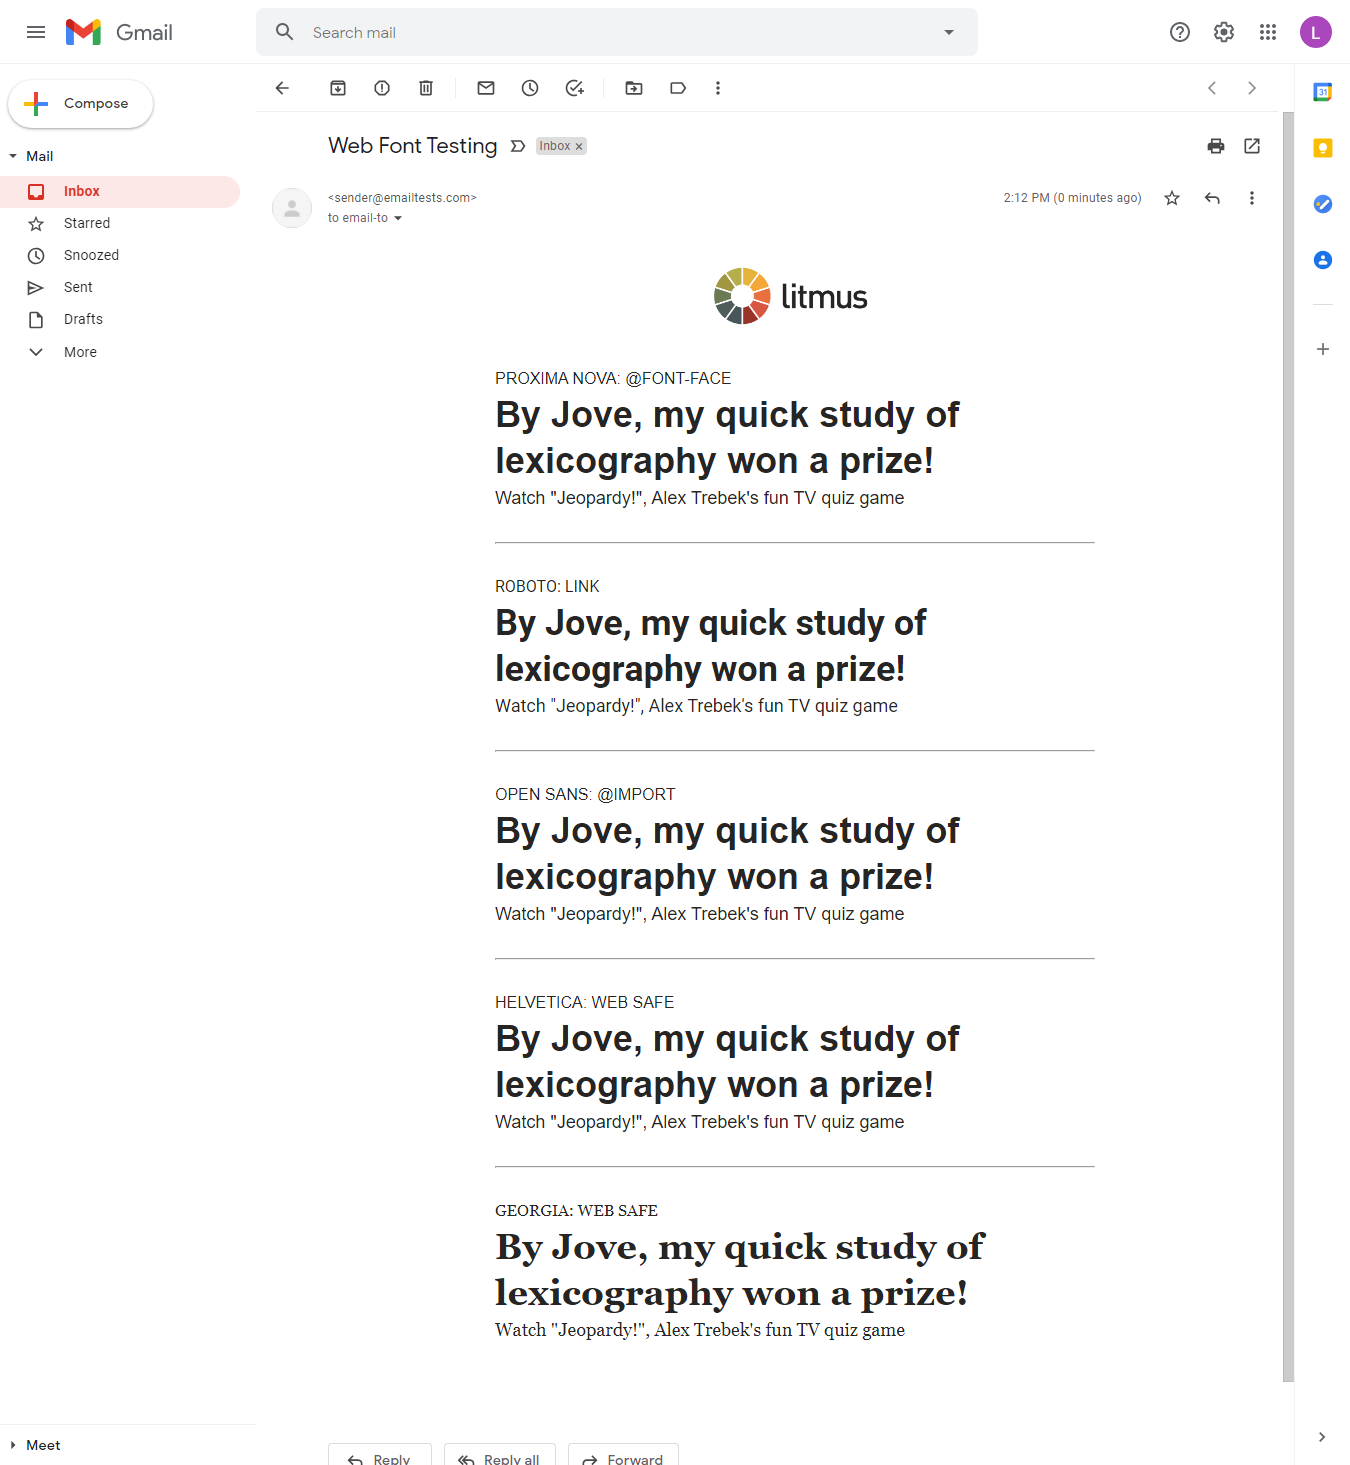 testing web font embed methods in gmail